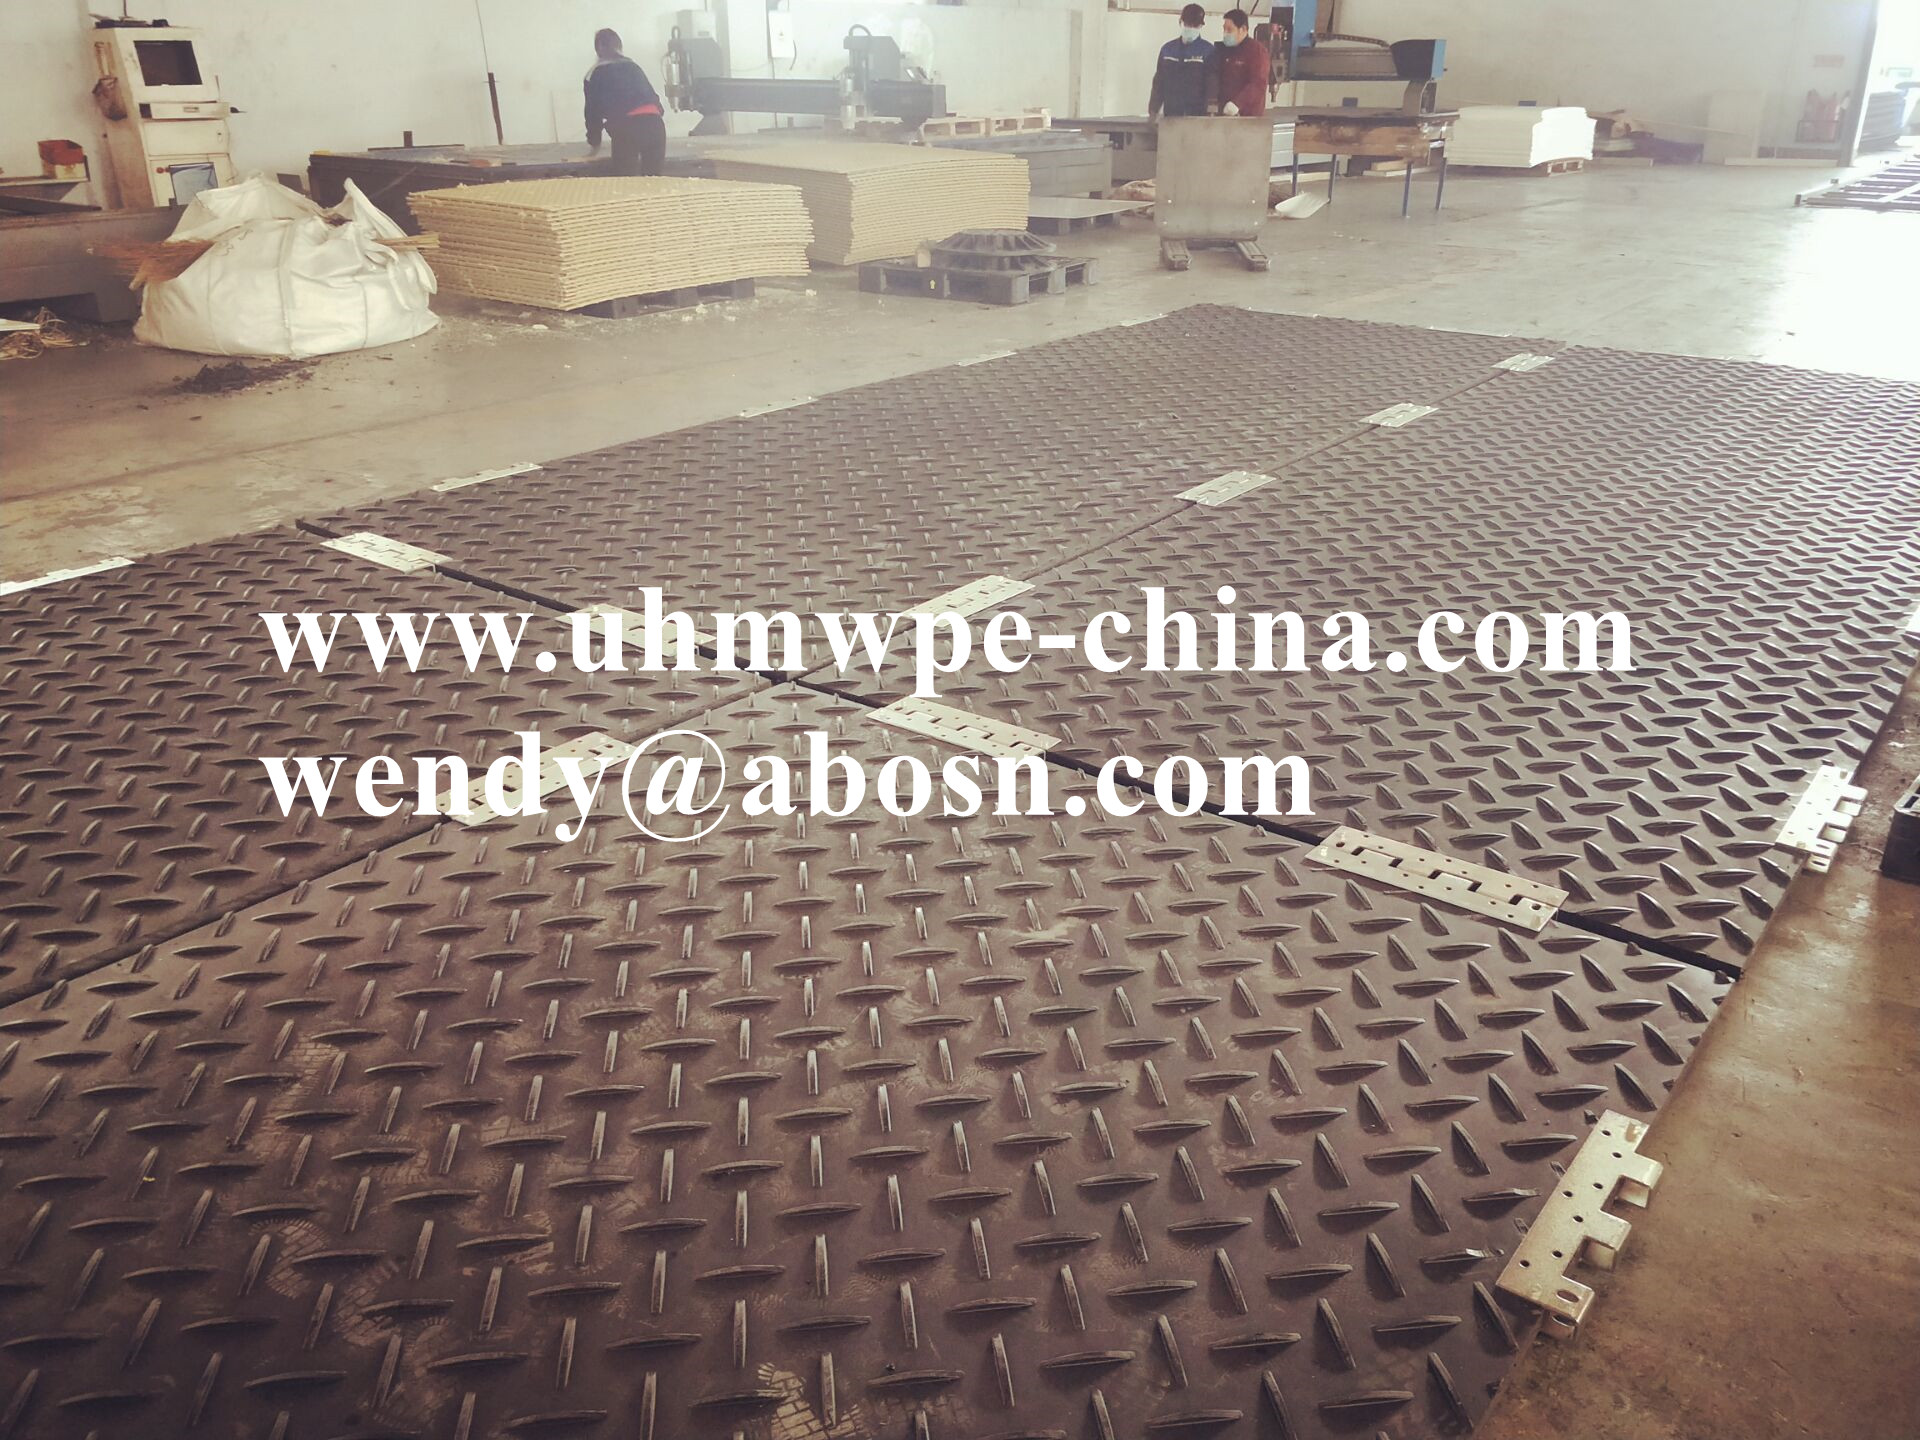 Construction Plastic Road Plates Composite Ground Cover Mats